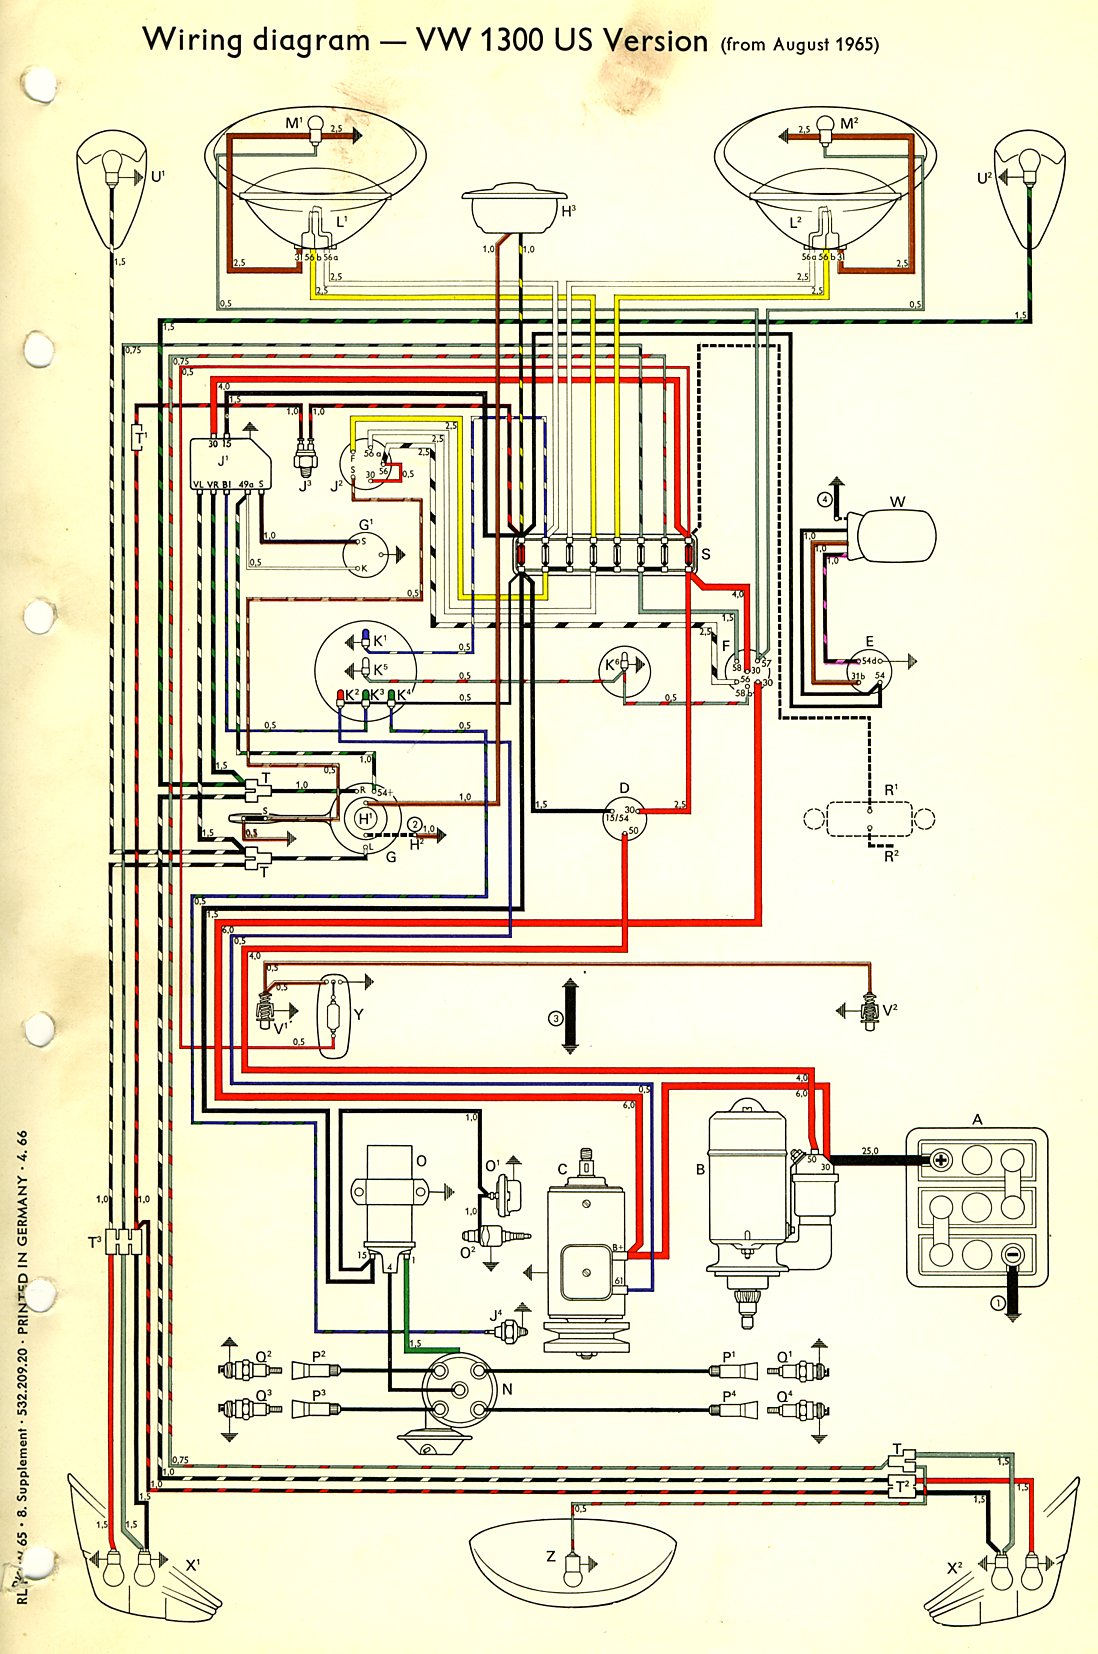 bug_66_USA thesamba com type 1 wiring diagrams on wiring diagram for 72 rail buggy